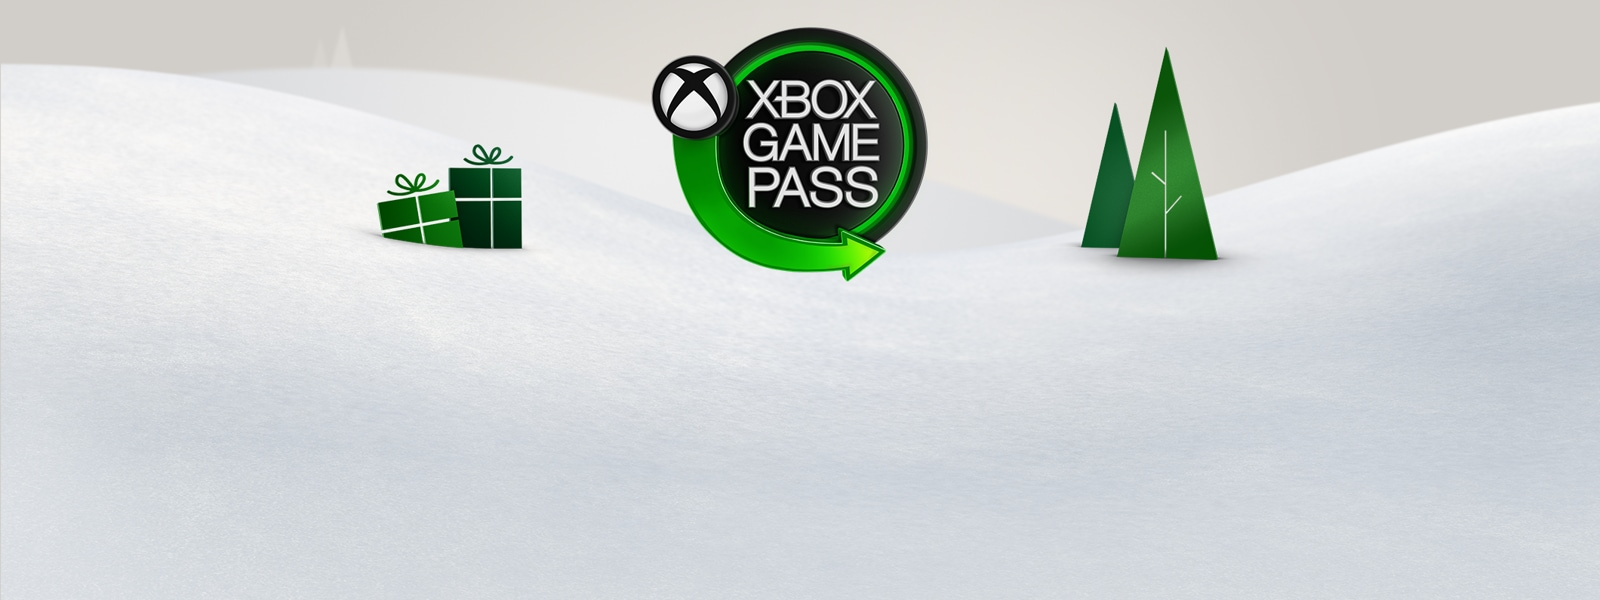 The Xbox Game Pass logo